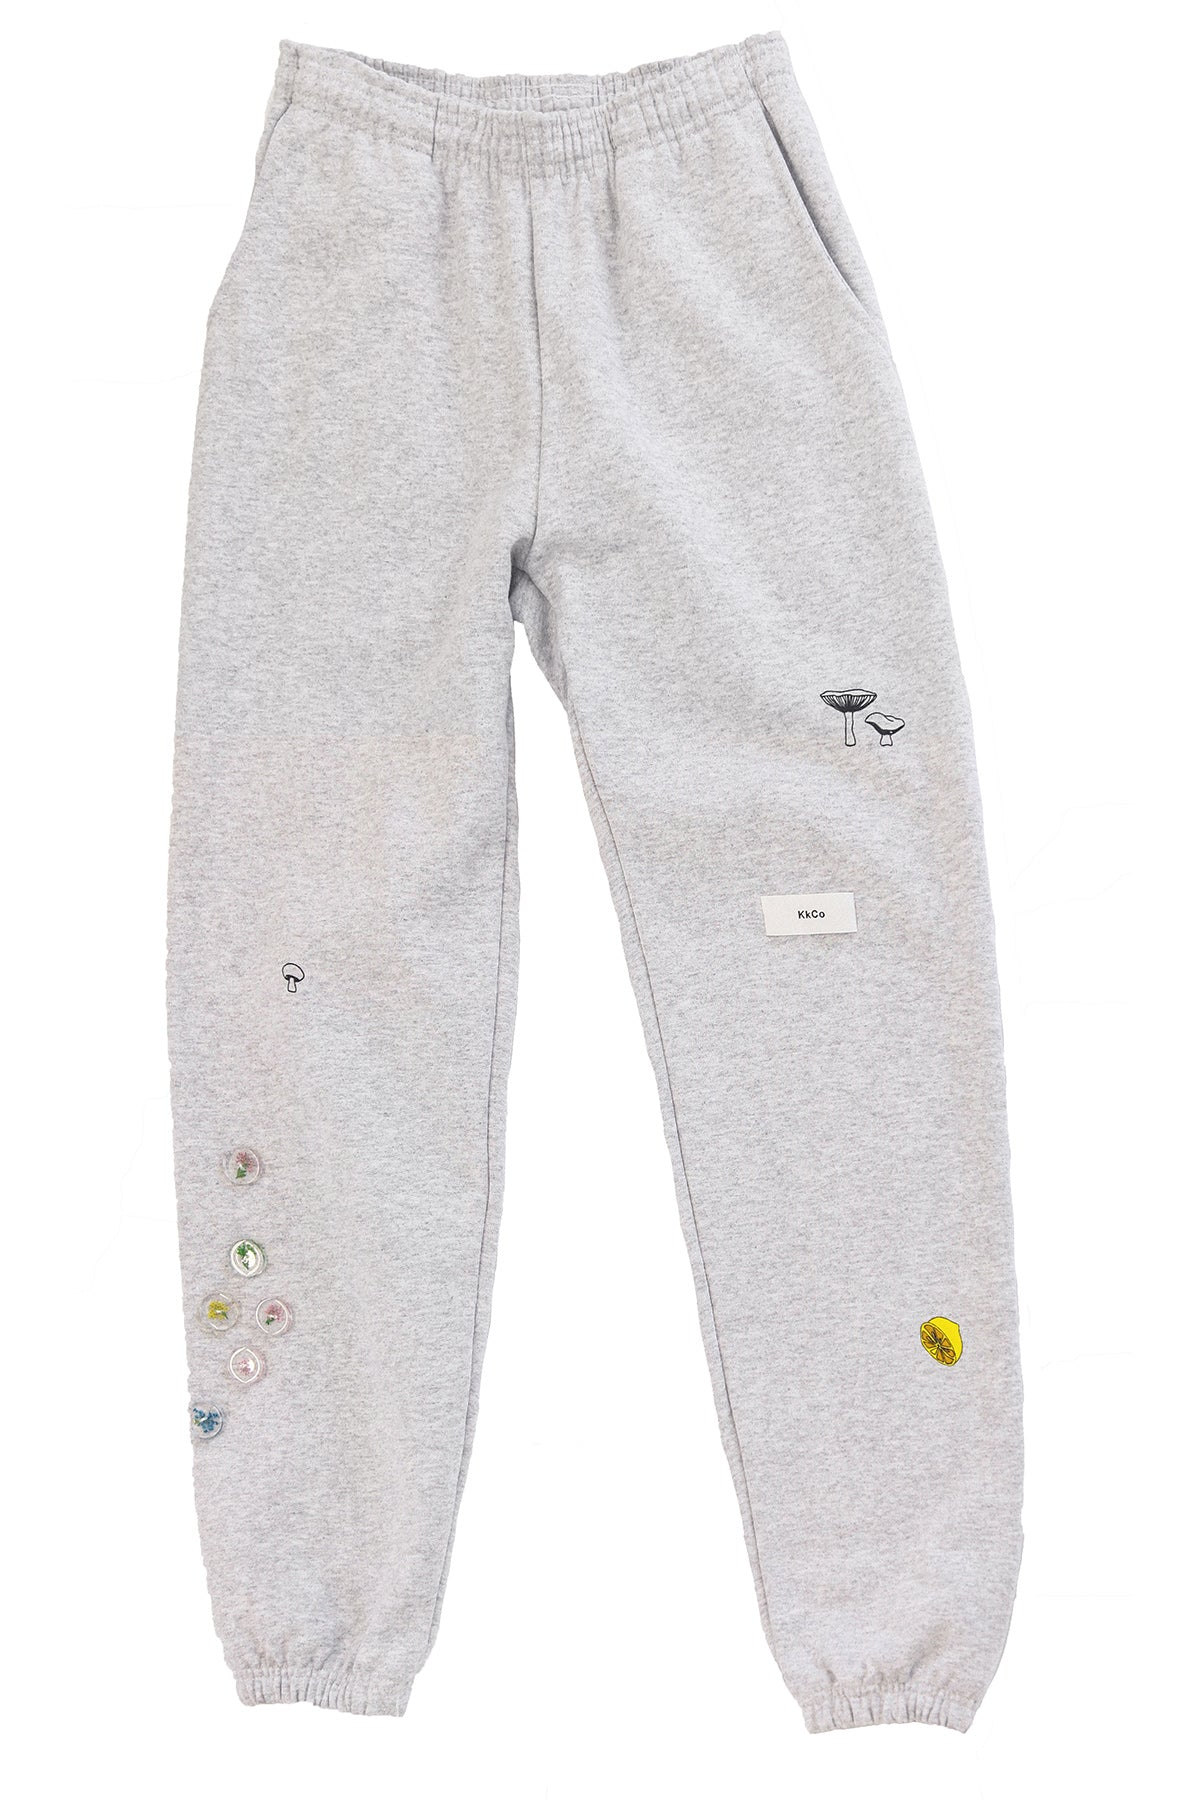 Forage Sweatpant in Heather Grey